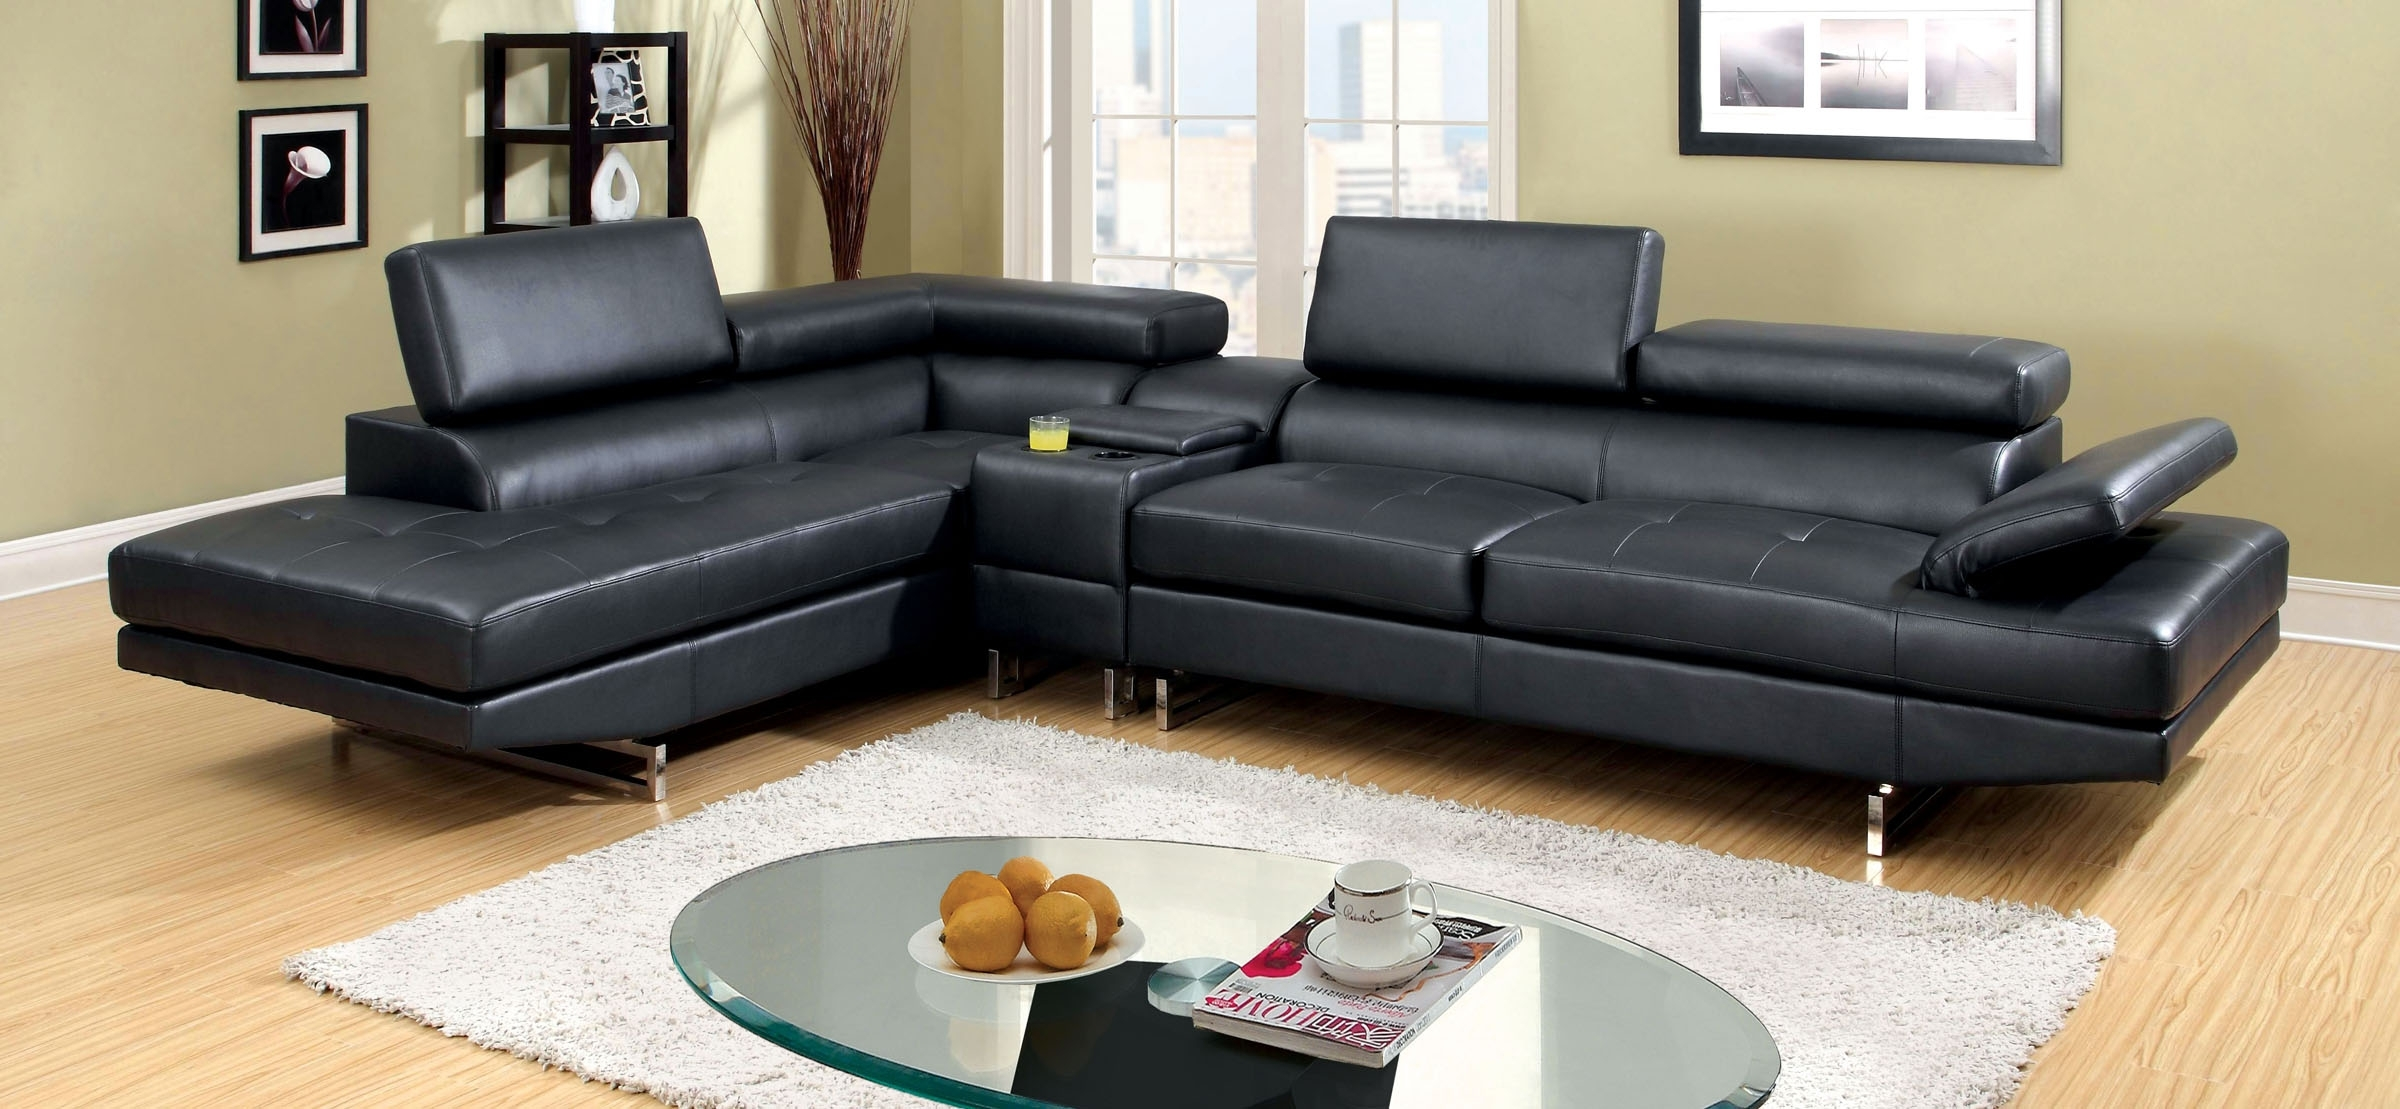 Famous Sectional Sofas With Consoles With Regard To Kemi Contemporary Black Bonded Leather Match Sectional Sofa Chaise (View 6 of 20)